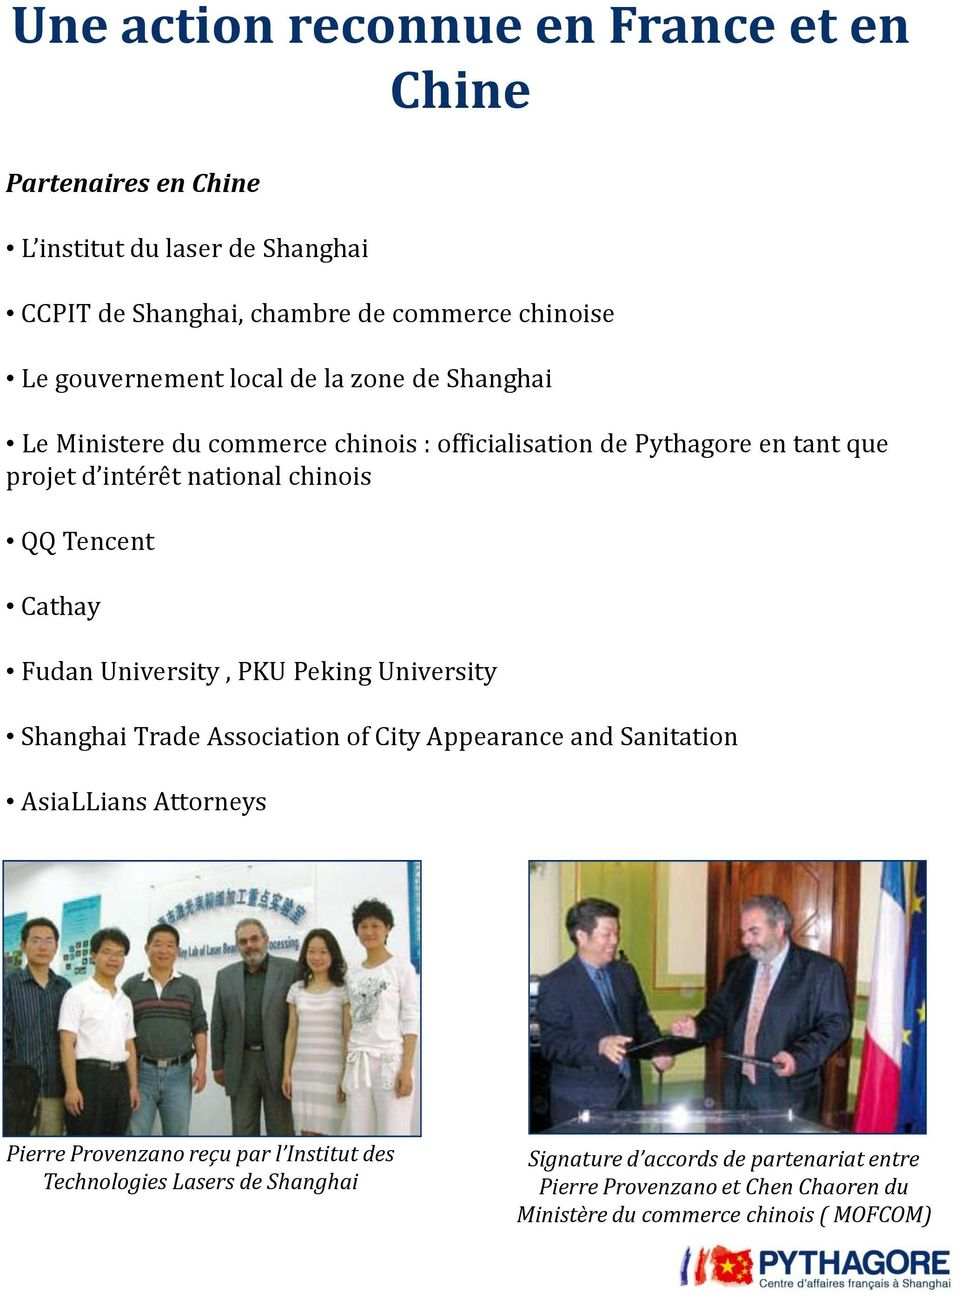 Tencent Cathay Fudan University, PKU Peking University Shanghai Trade Association of City Appearance and Sanitation AsiaLLians Attorneys Pierre Provenzano